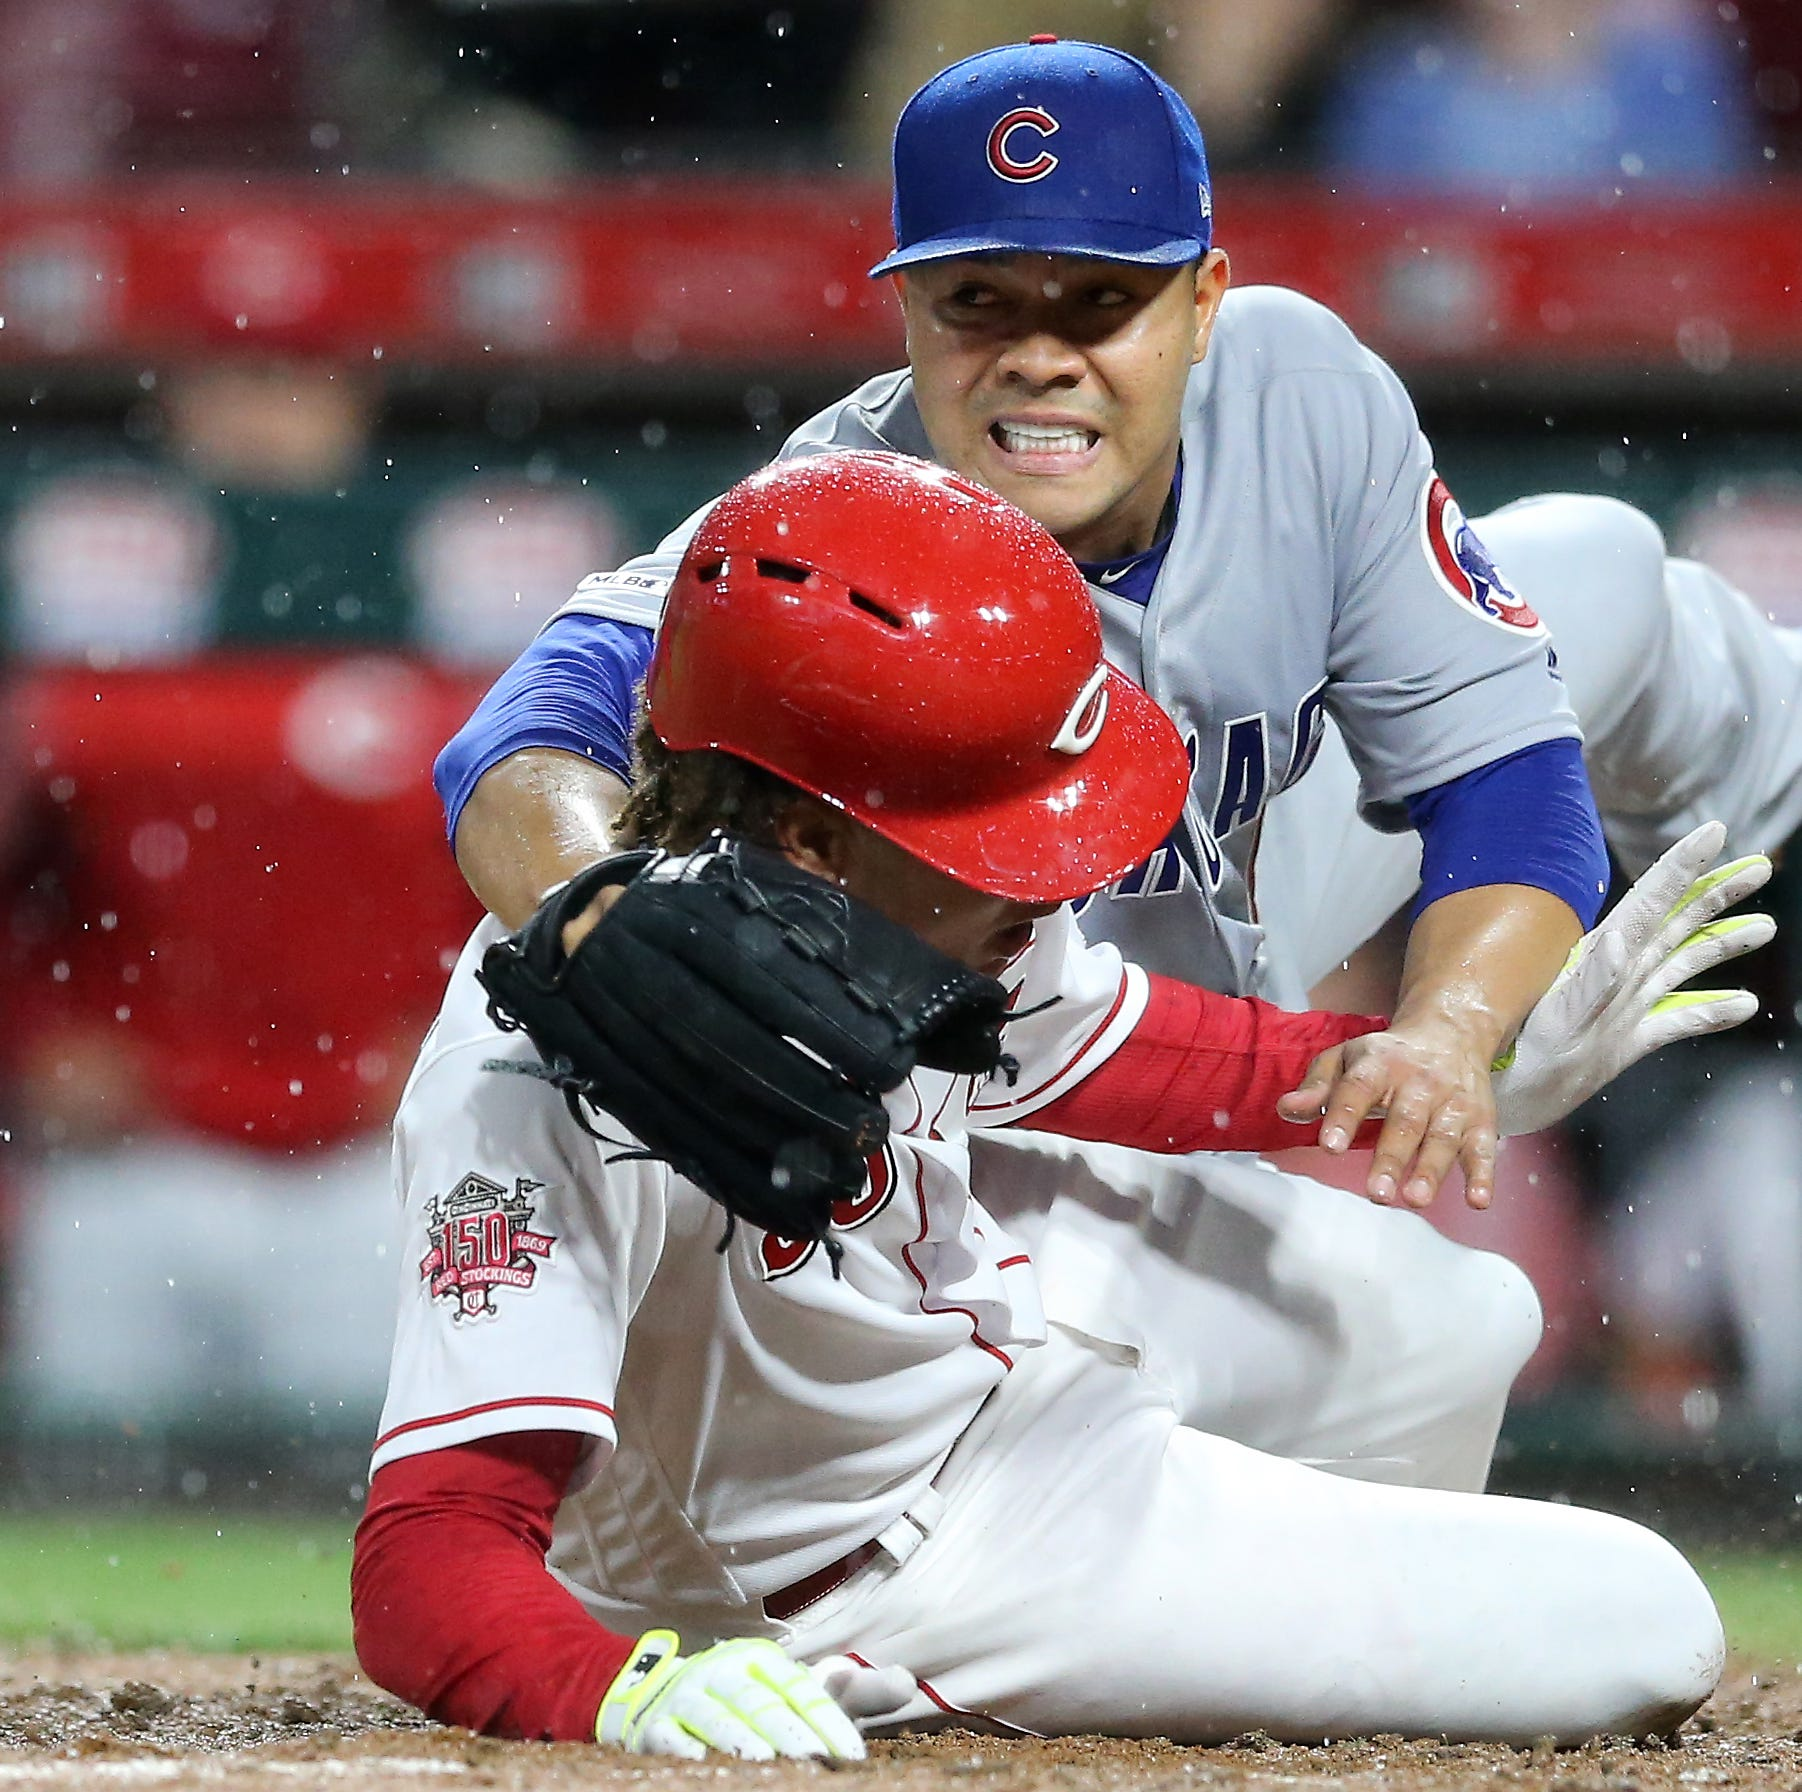 Cincinnati Reds rally against Chicago Cubs before rain delay, win 2 of 3 games in series